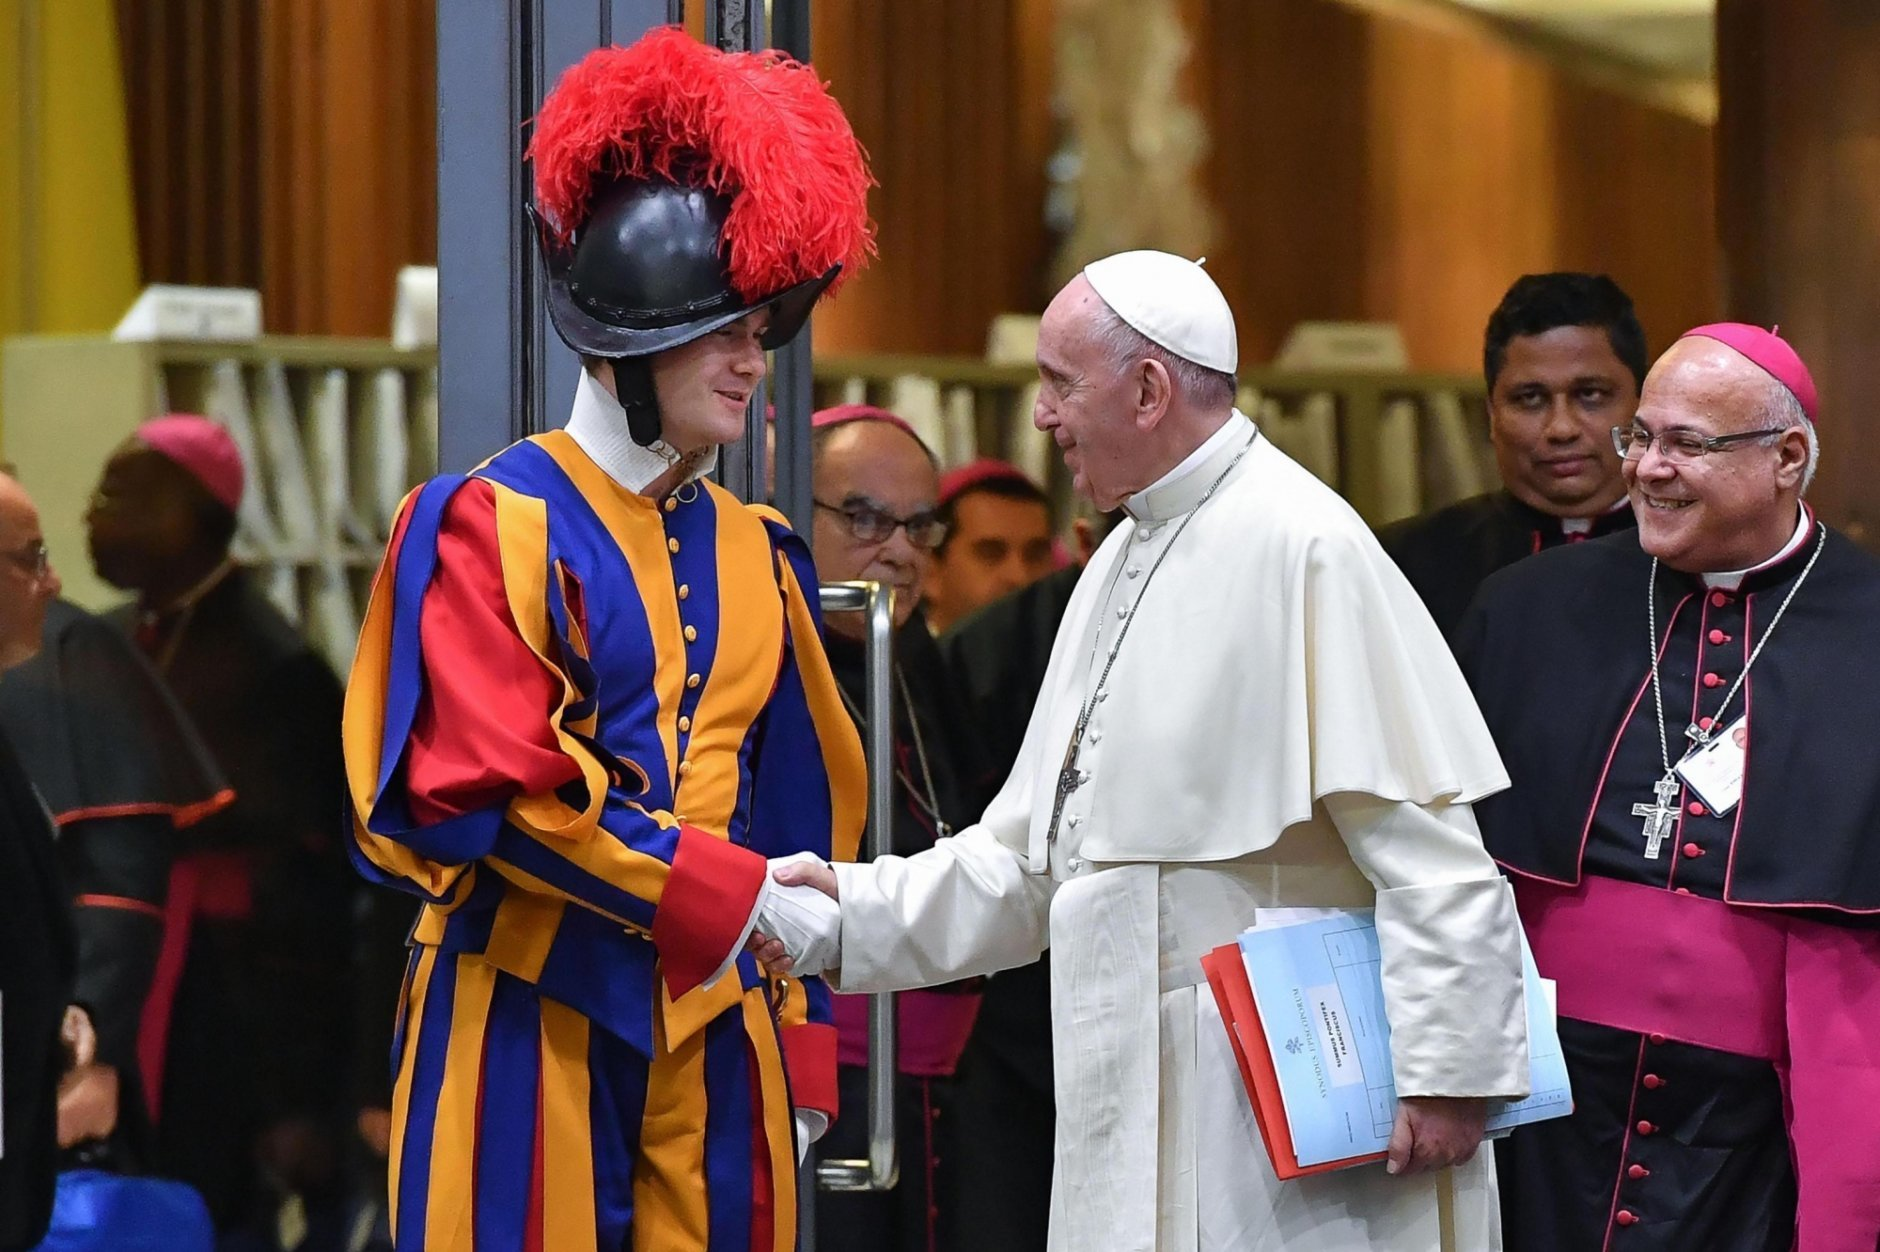 Pope Francis shakes hands with a Swiss Guard as he leaves after opening of the 15th Ordinary General Assembly of the Synod of Bishops, at the Vatican, Wednesday, Oct. 3, 2018. The Oct. 3-28 synod is opening under a fresh cloud of scandal with new revelations about decades of sexual misconduct and cover-up in the U.S., Chile, Germany and elsewhere. (Alessandro Di Meo/ANSA via AP)